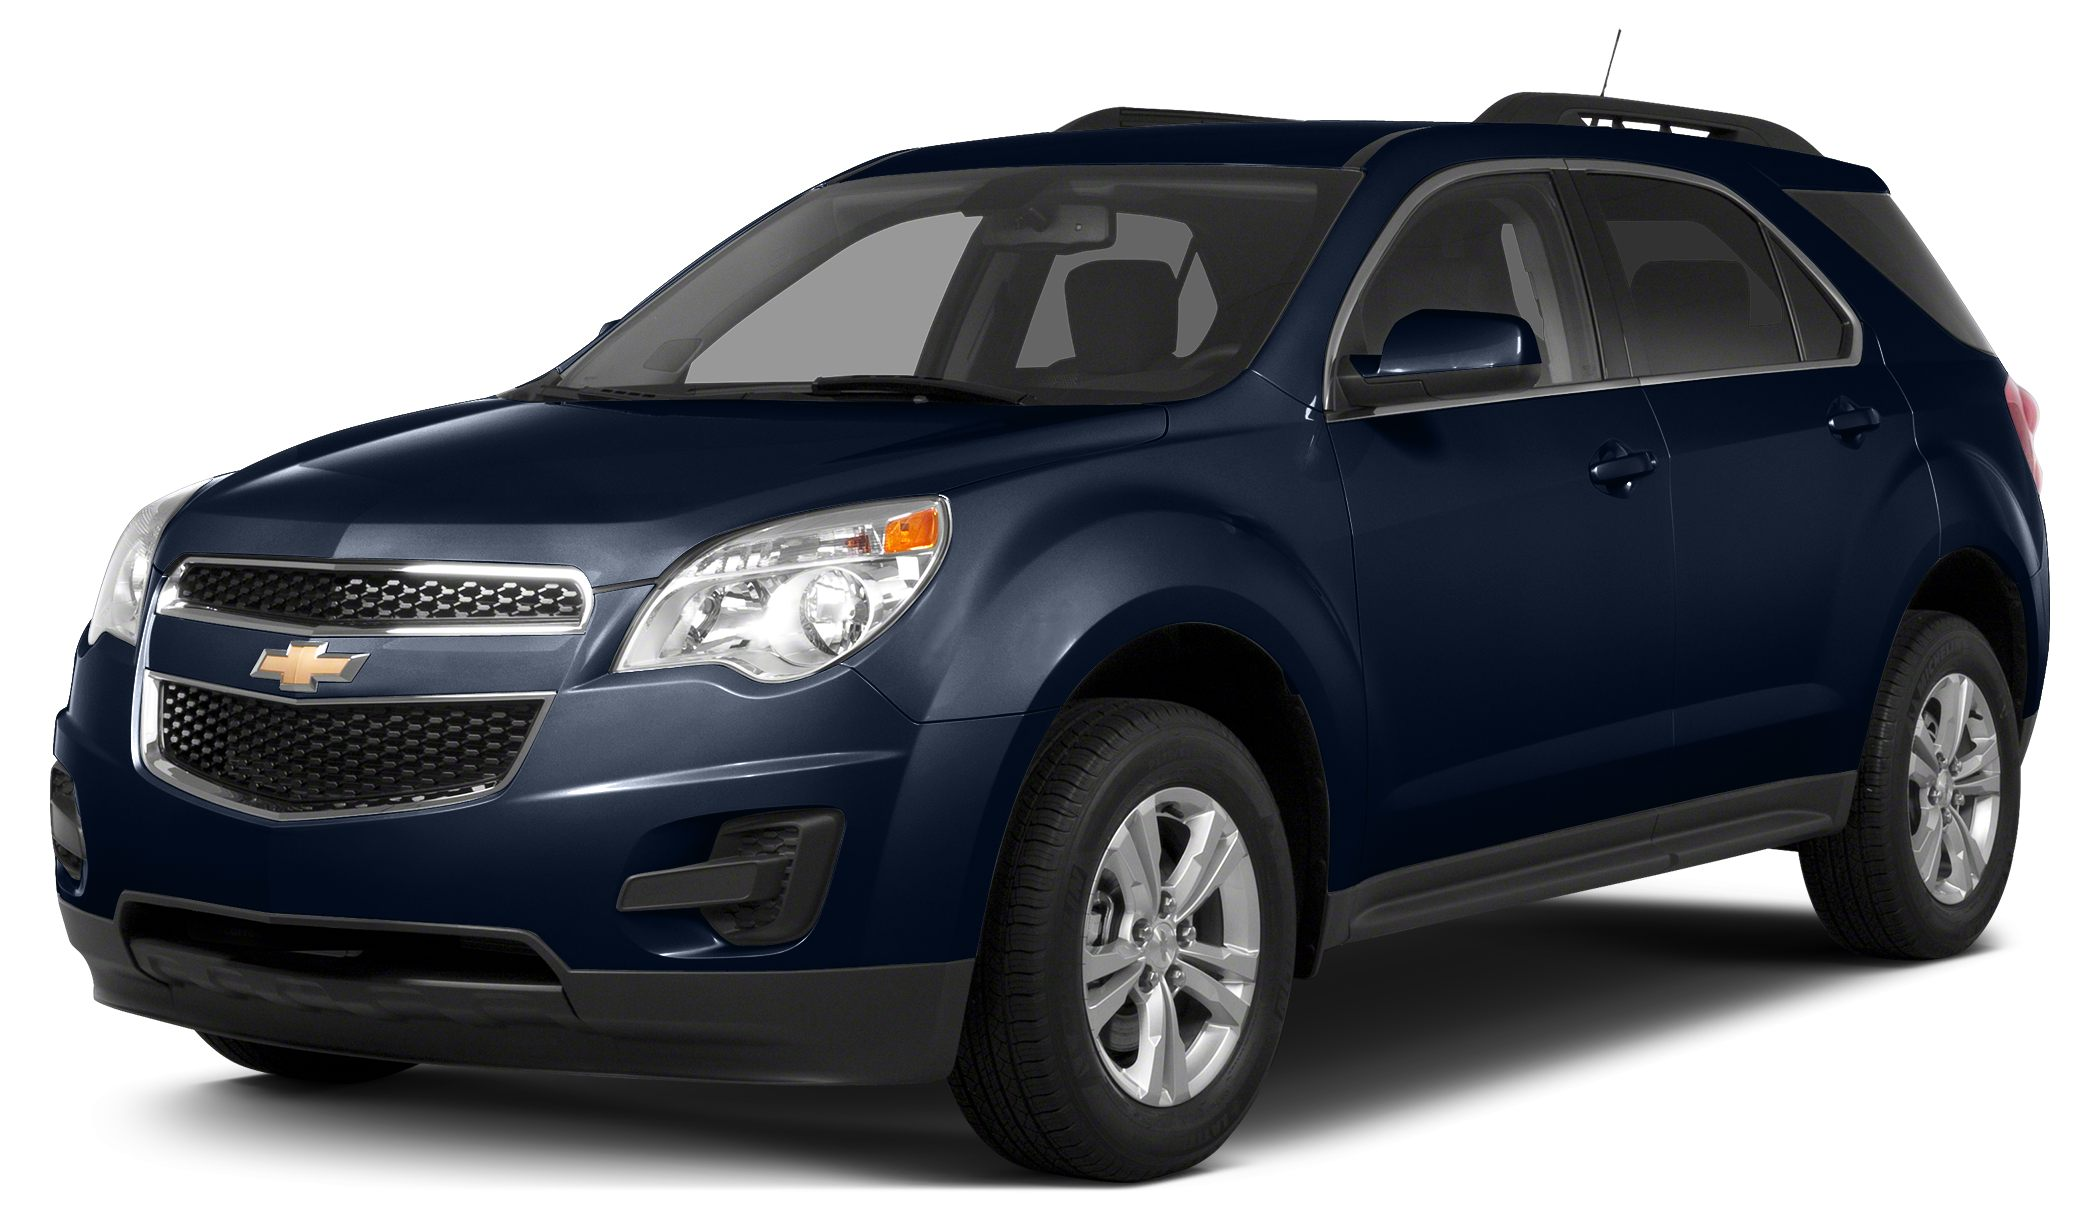 2015 Chevrolet Equinox LT w1LT CARFAX One-Owner - Certified - Clean Carfax - 1 Owner - AWD - 8-Wa